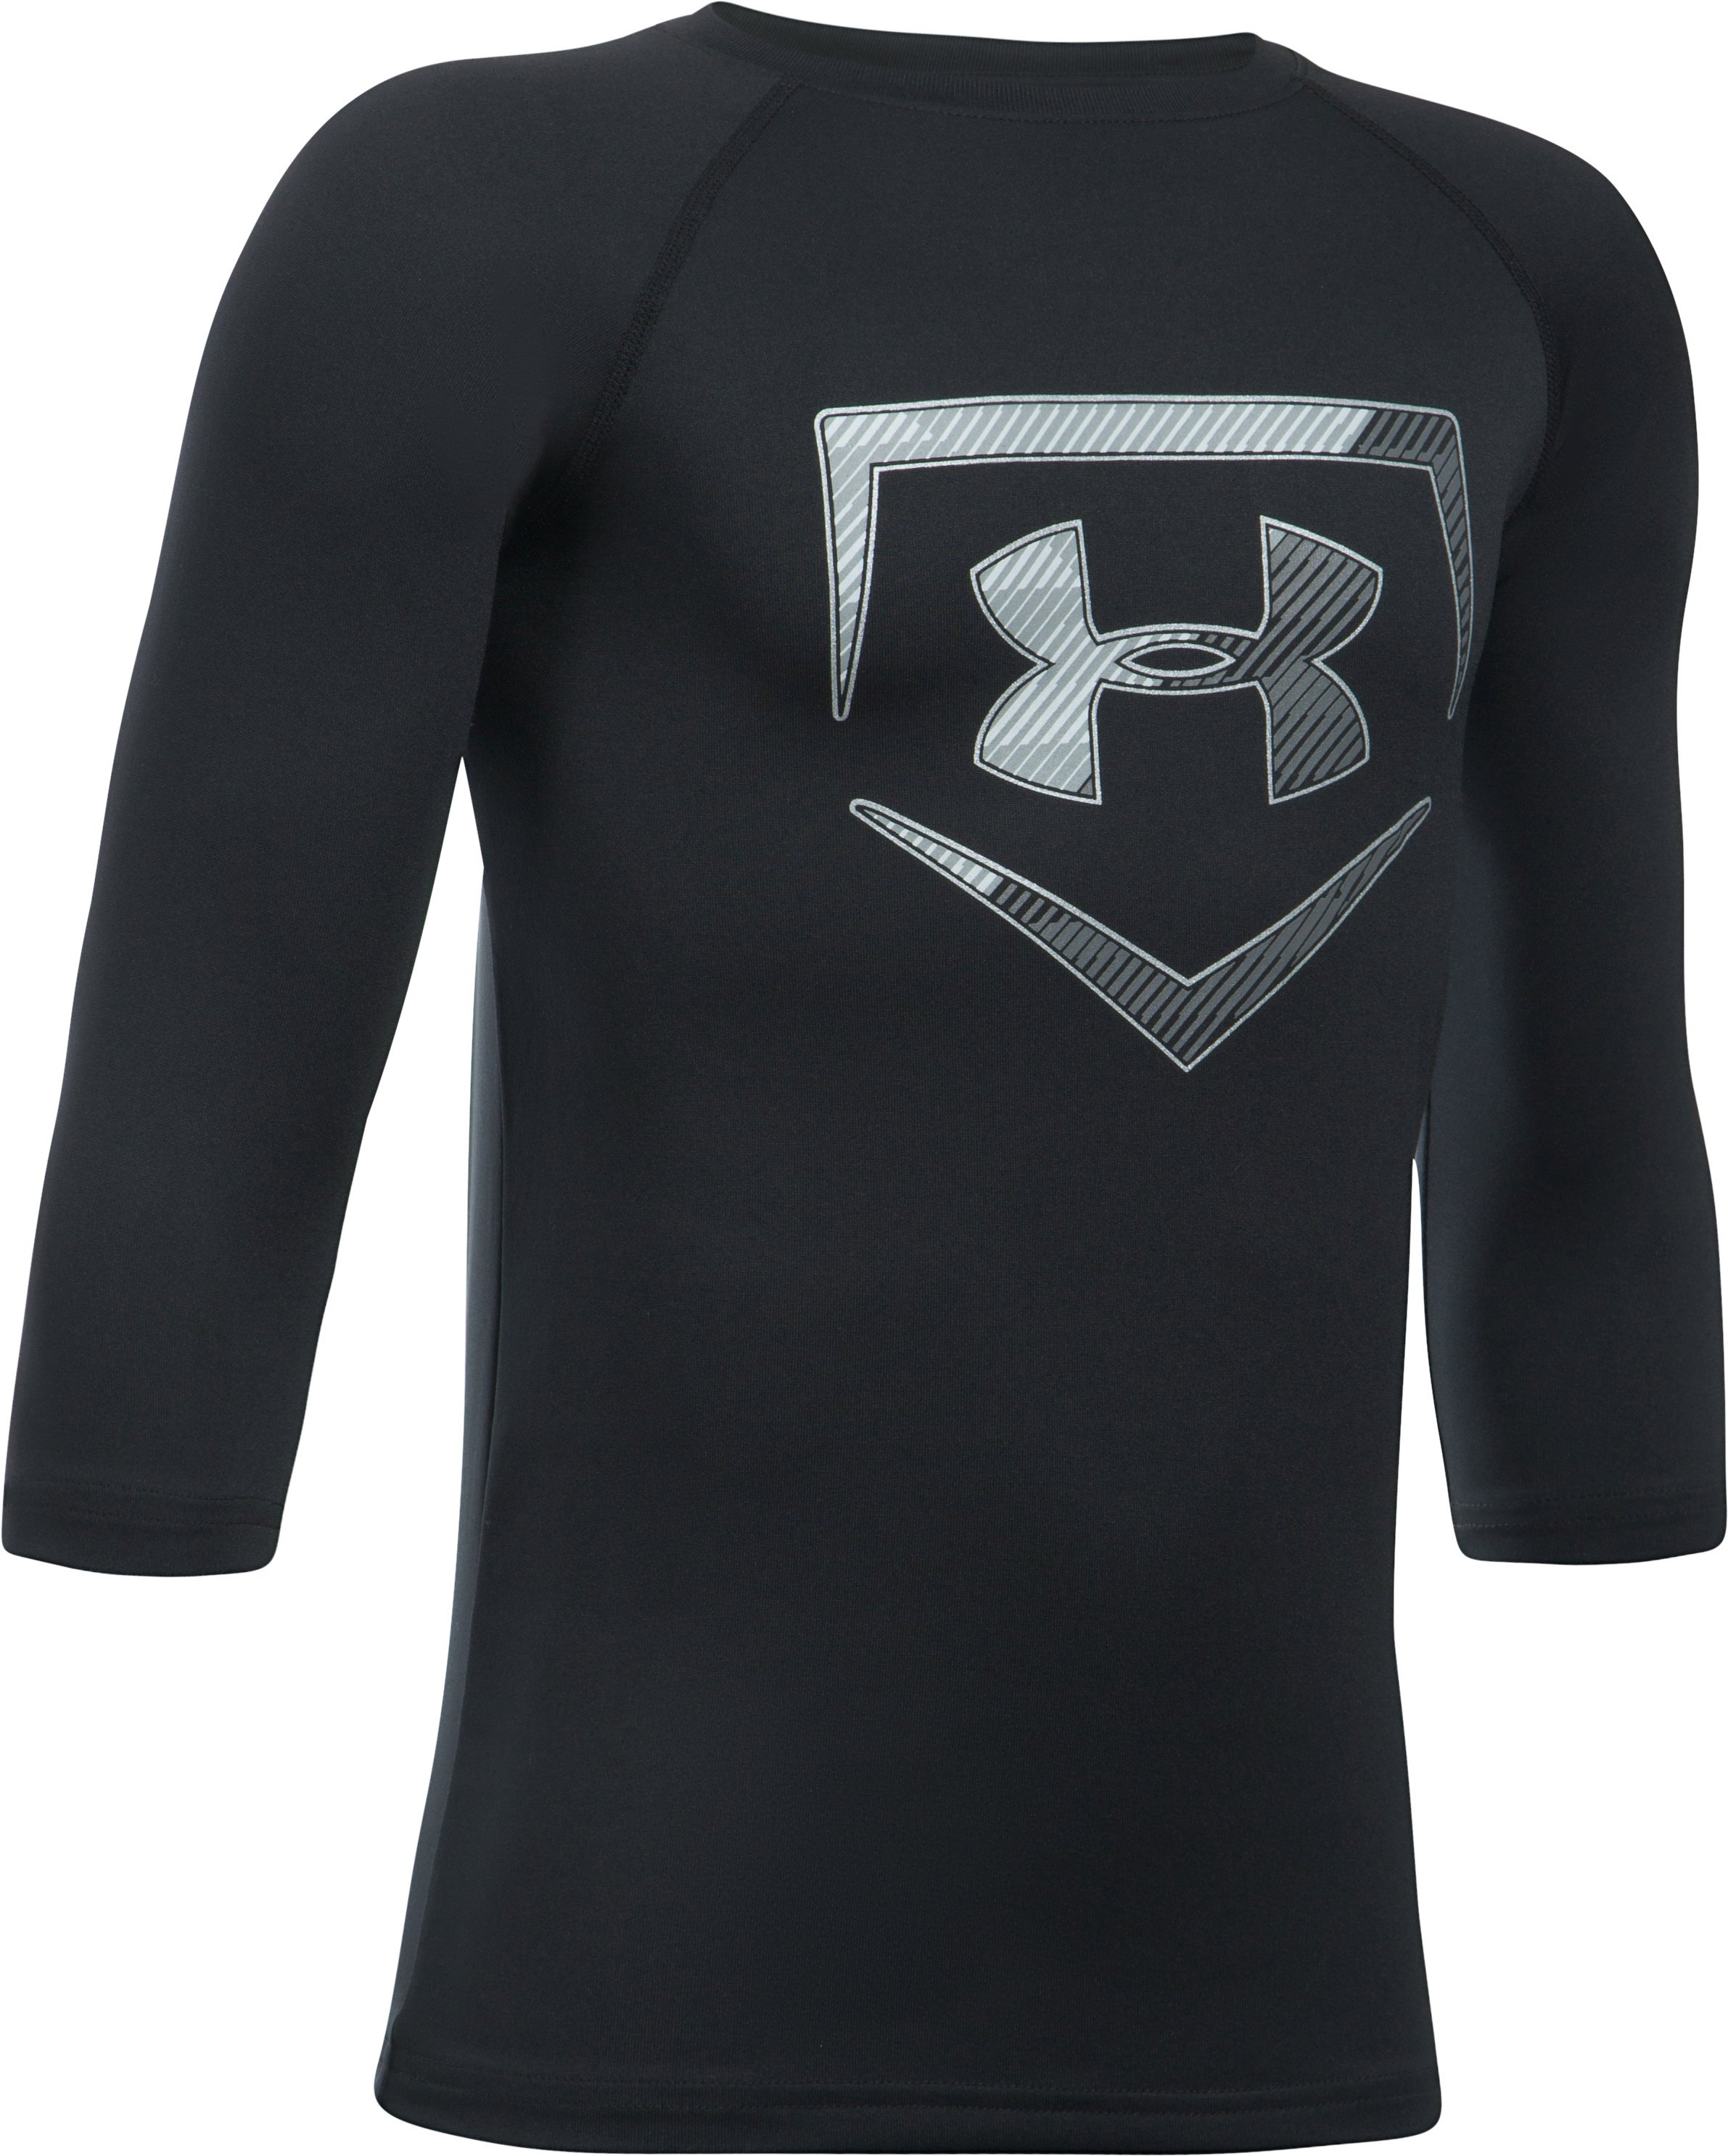 Boys' UA Plate ¾ Sleeve T-Shirt, Black